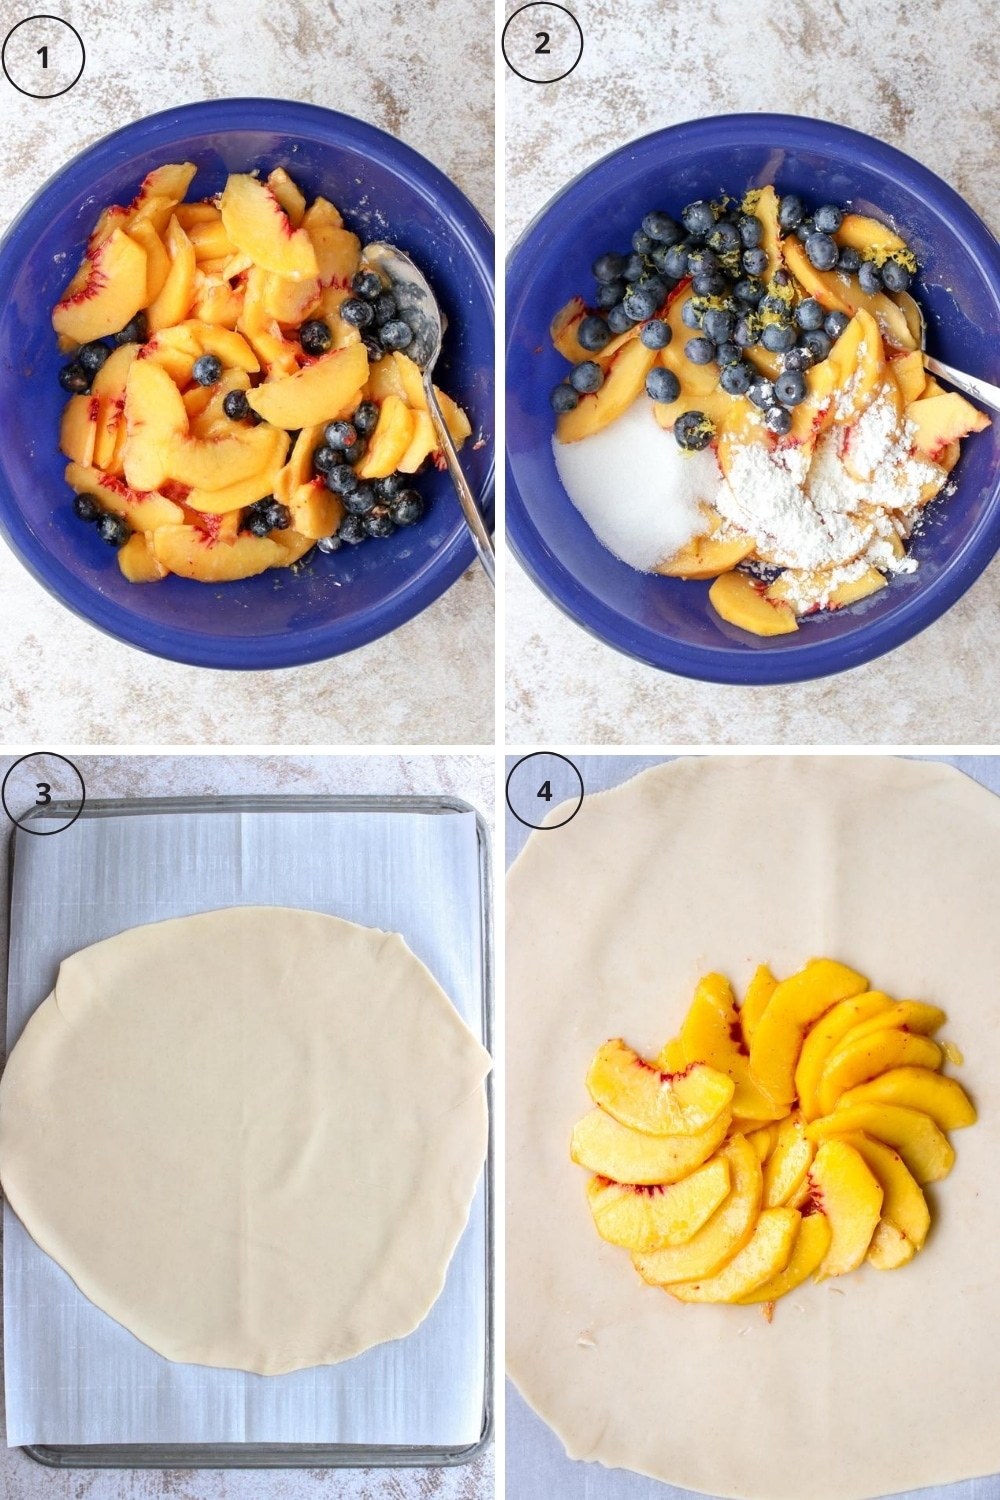 Photo showing first four steps to make the galette